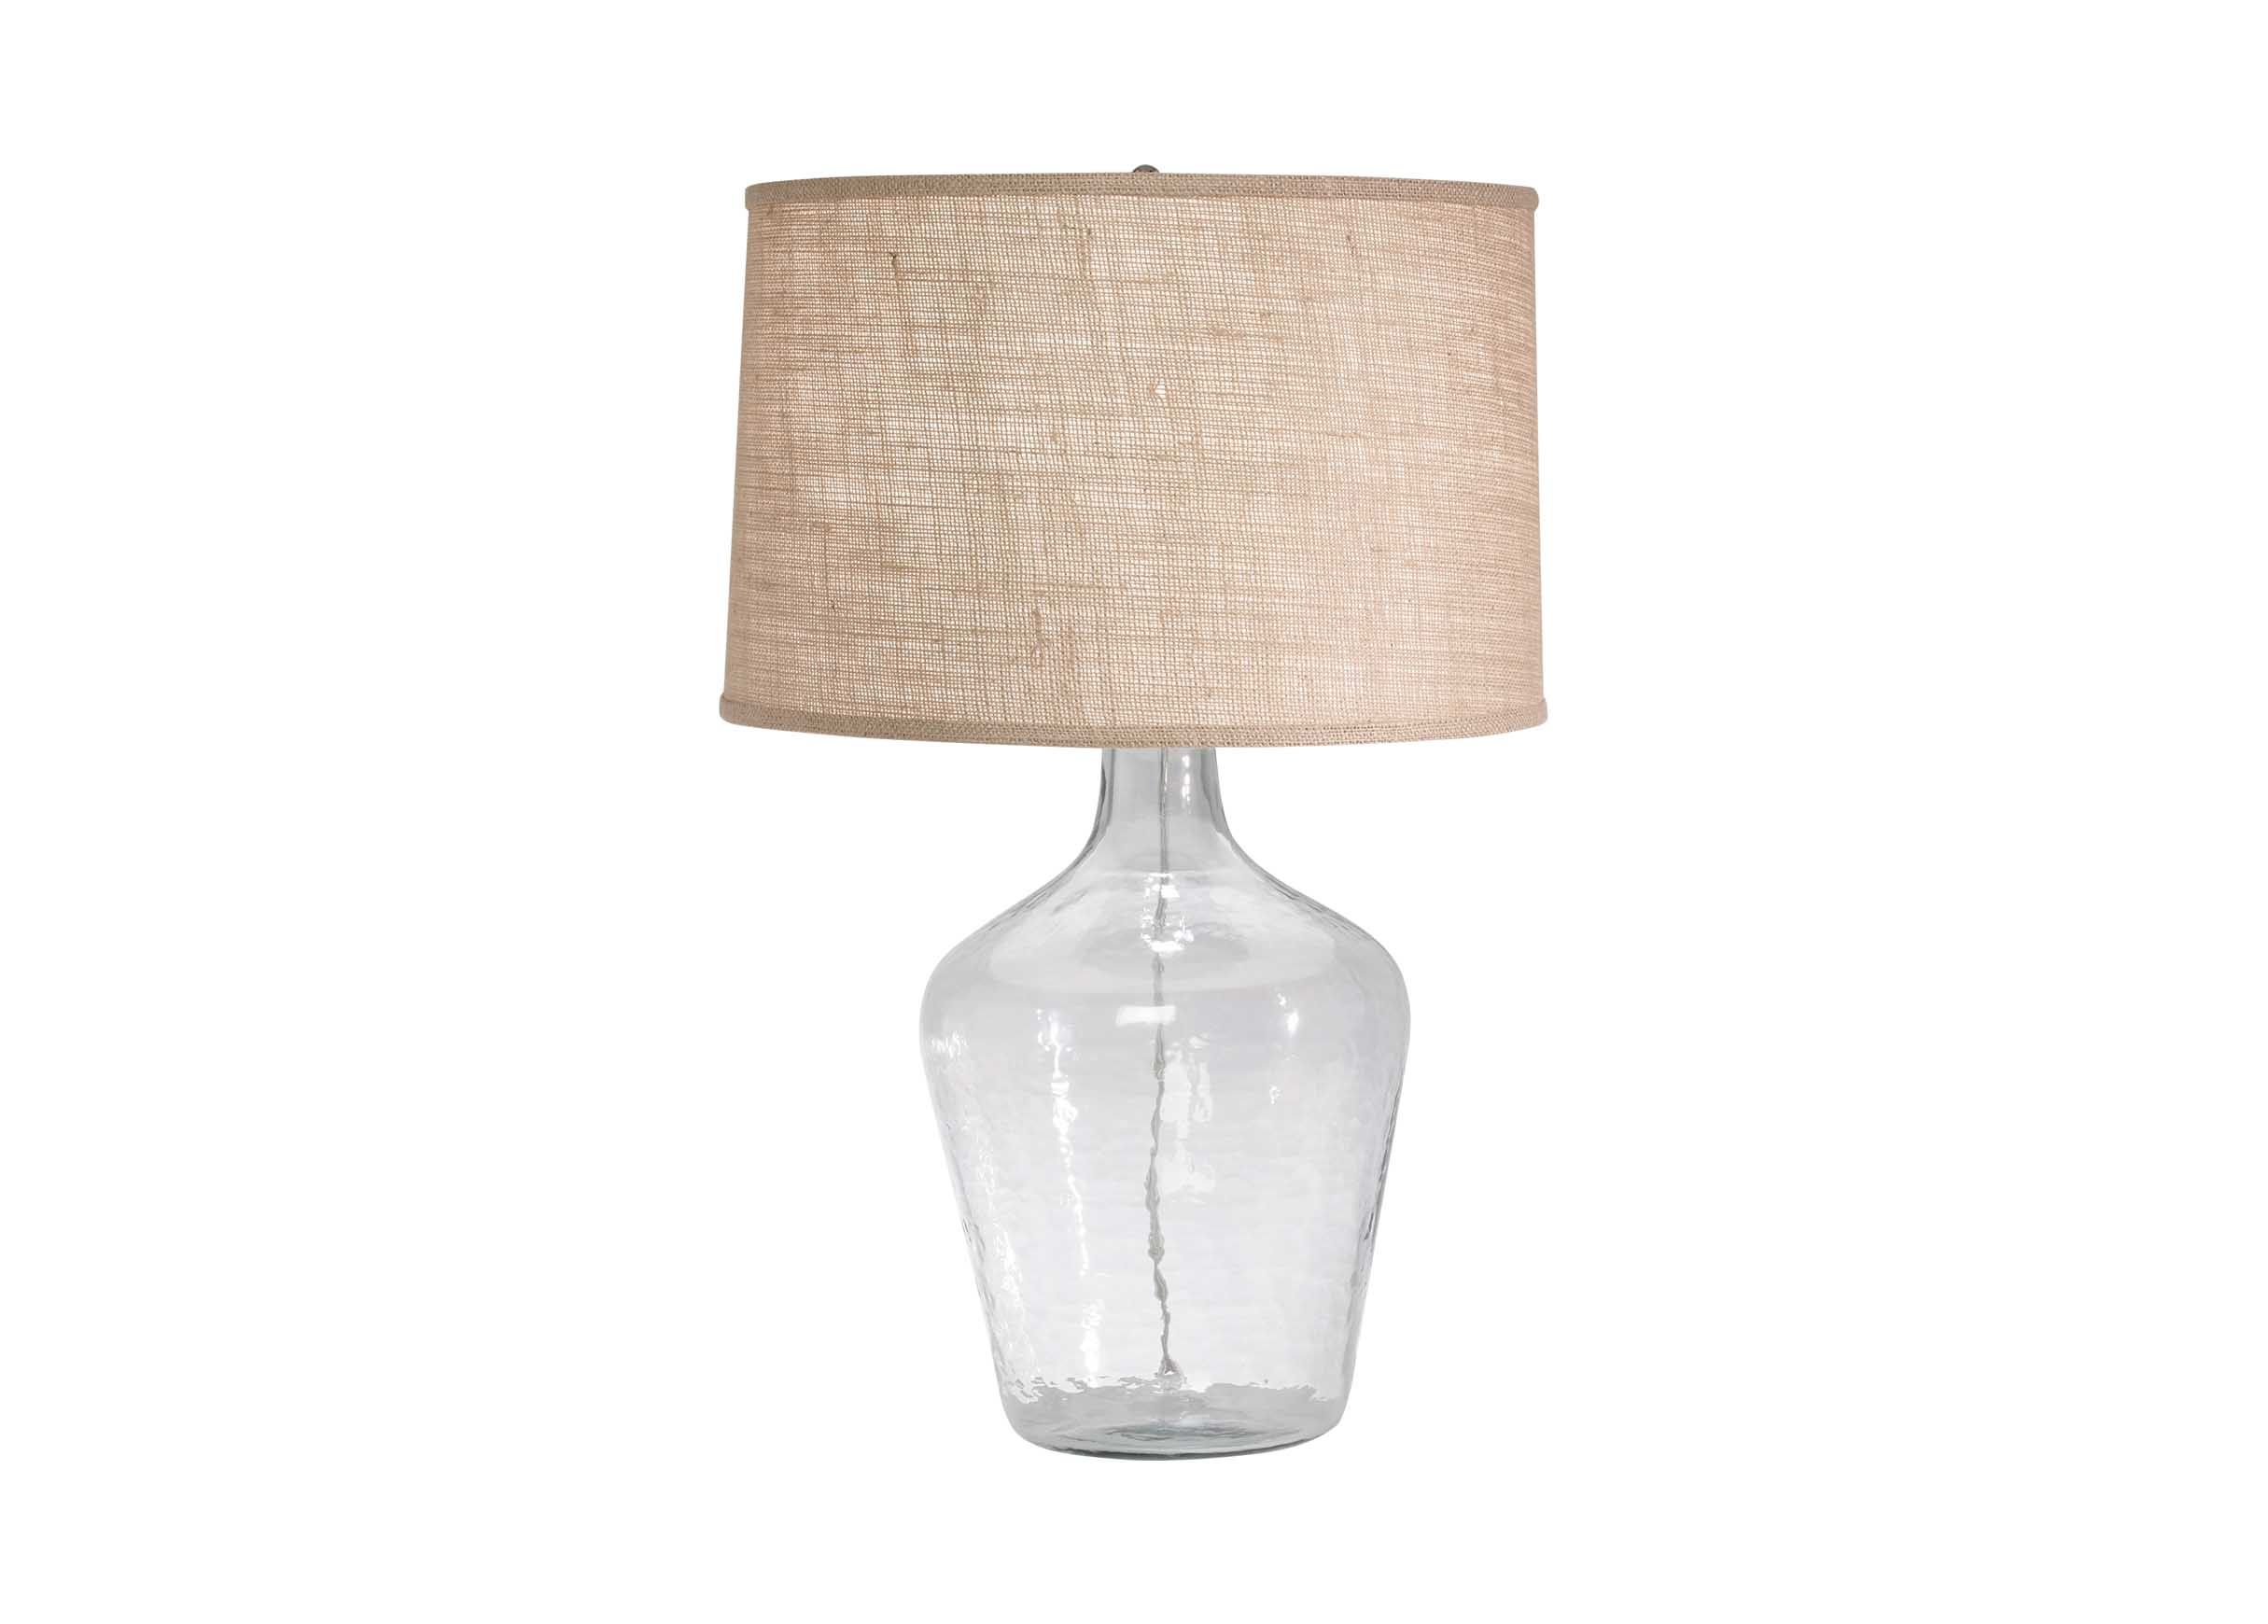 Glass plum jar table lamp table lamps sitegenesis 10112 images glass plum jar table lamp largegray geotapseo Images